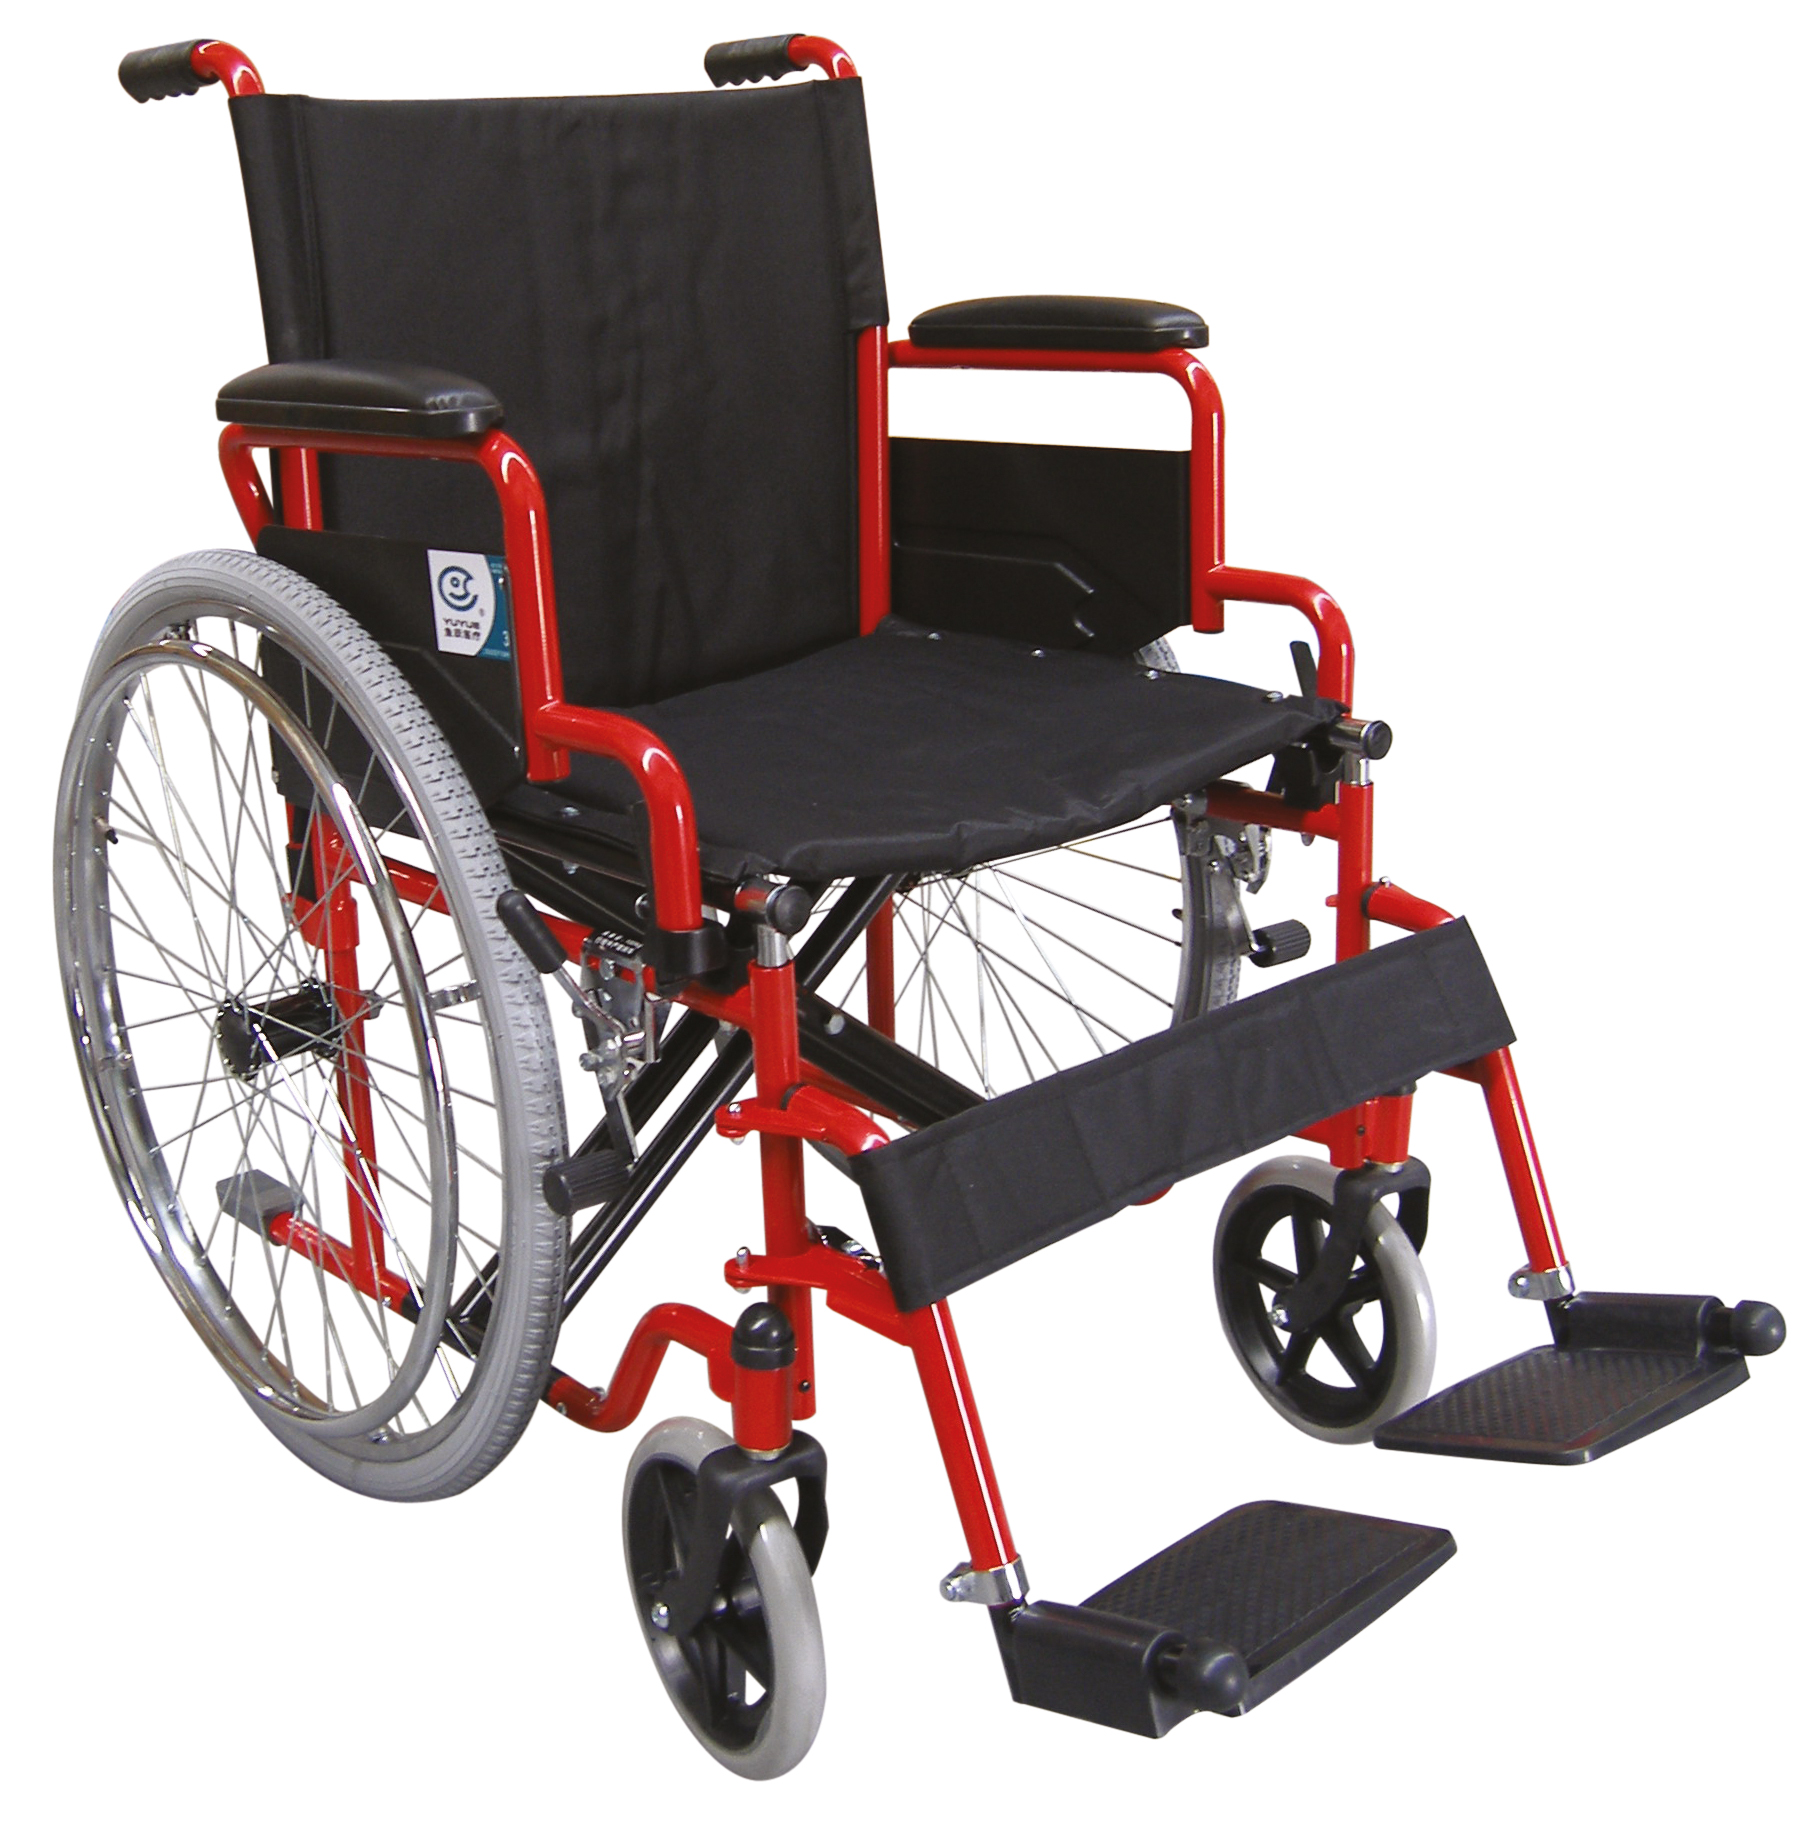 Self-Propelling Wheelchair